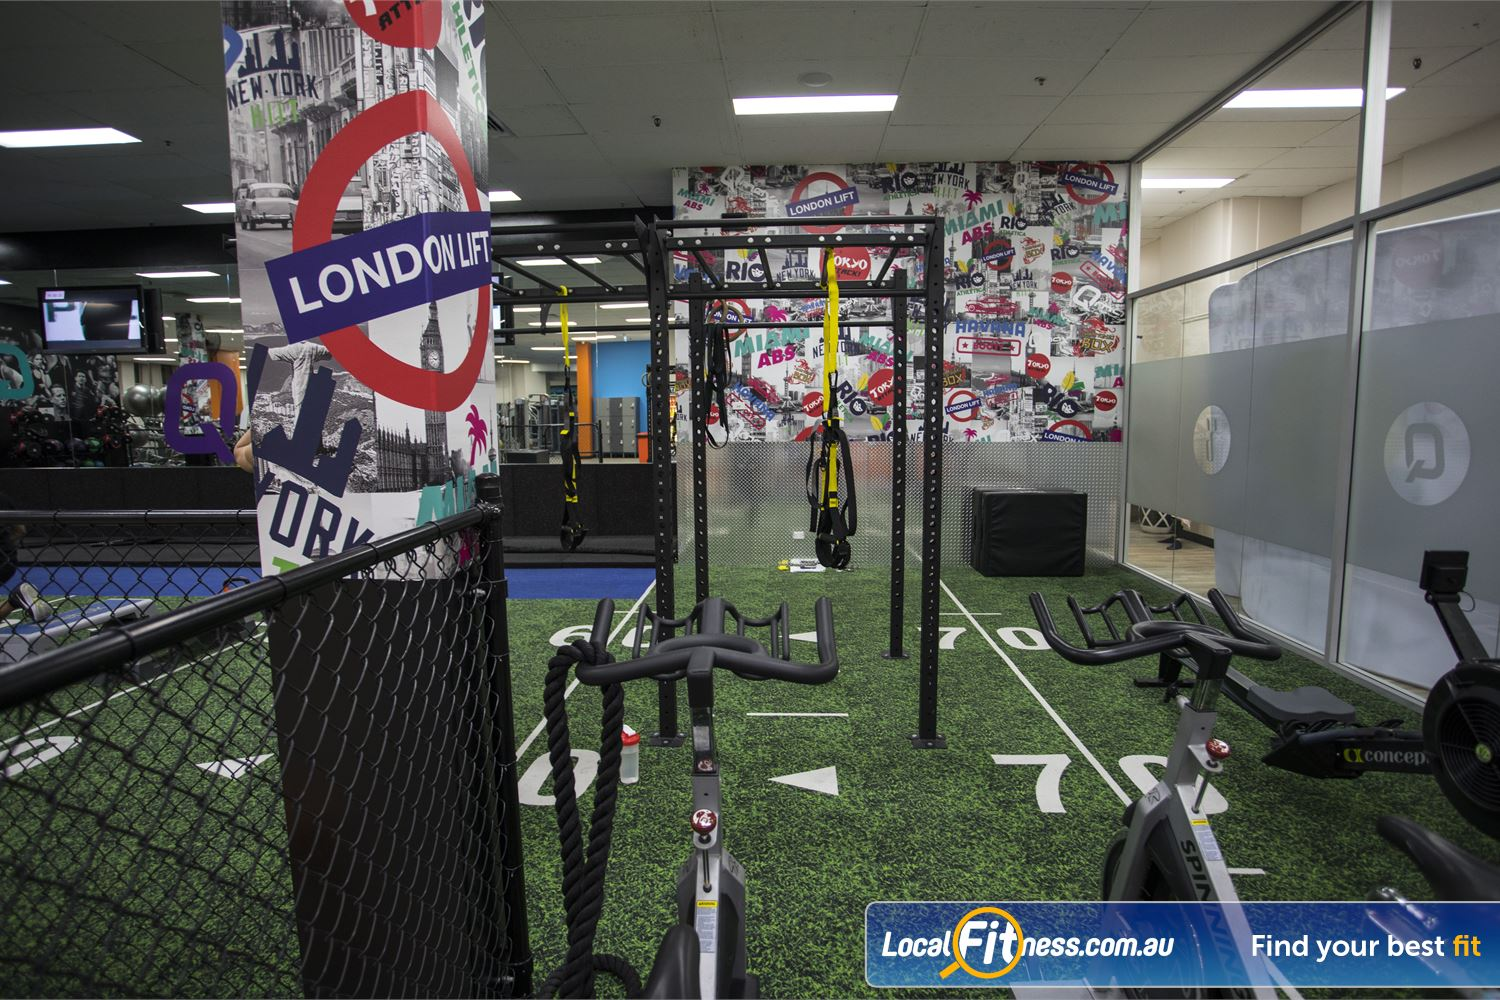 Fit n Fast Sydney TRX, strength training, plyo jumps, battle ropes, kettlebells and more.